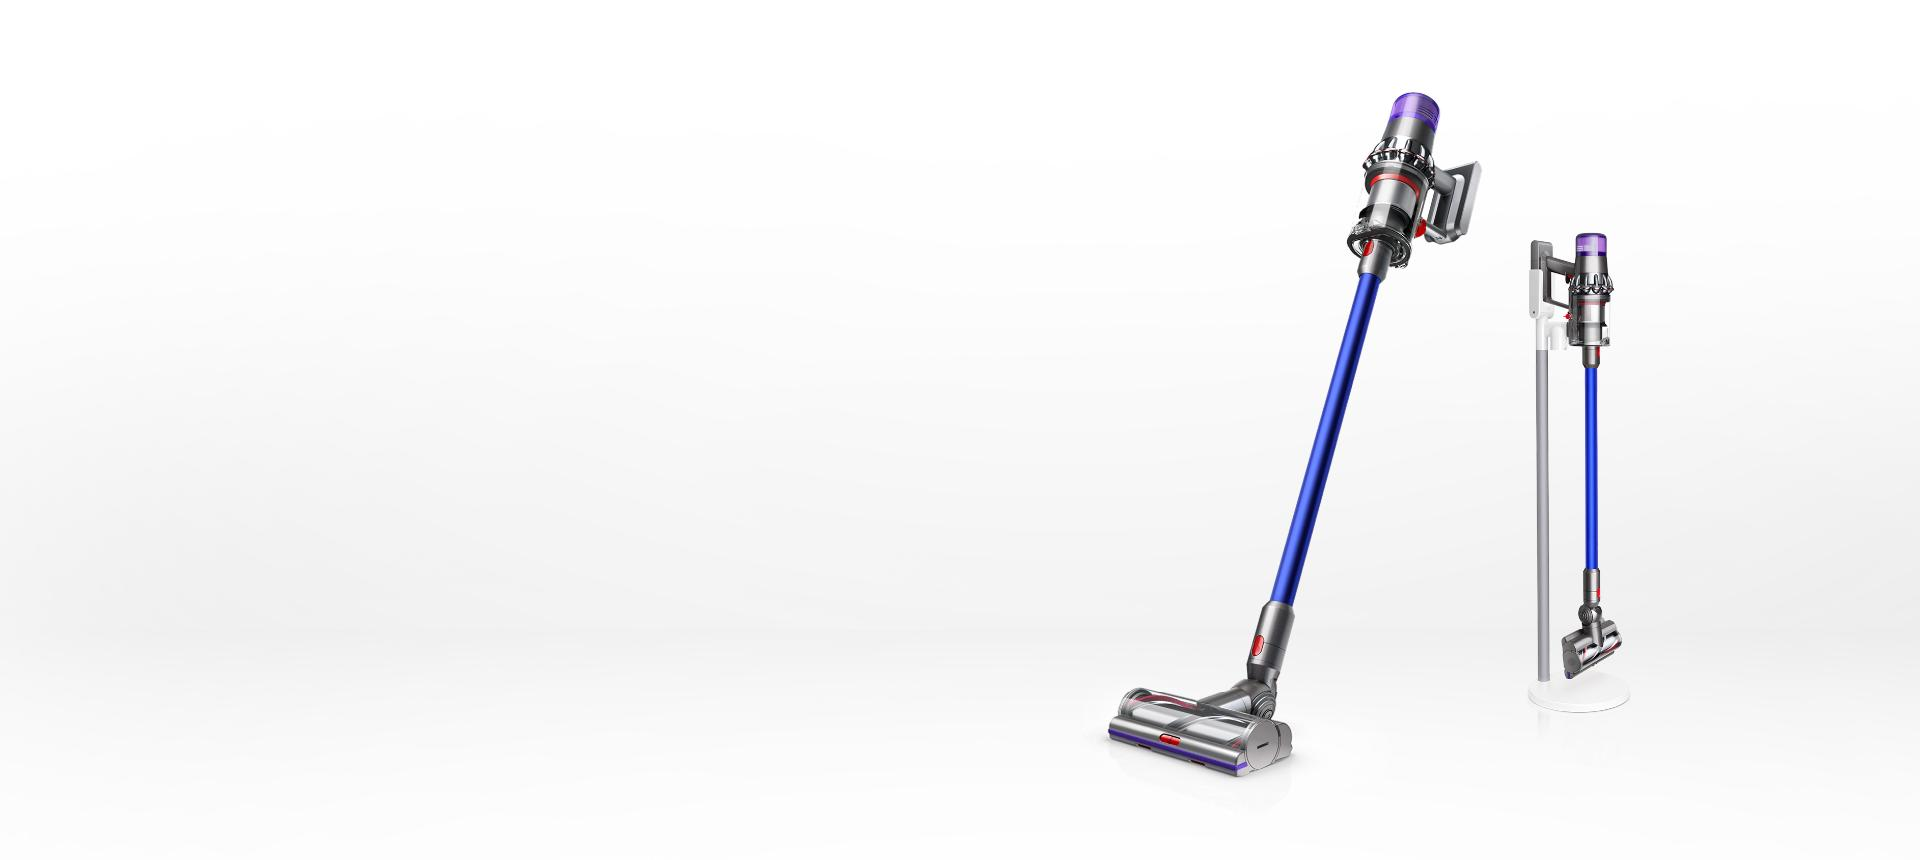 Get the Dyson V11 Dok for $54 with purchase of Dyson V11 Absolute.